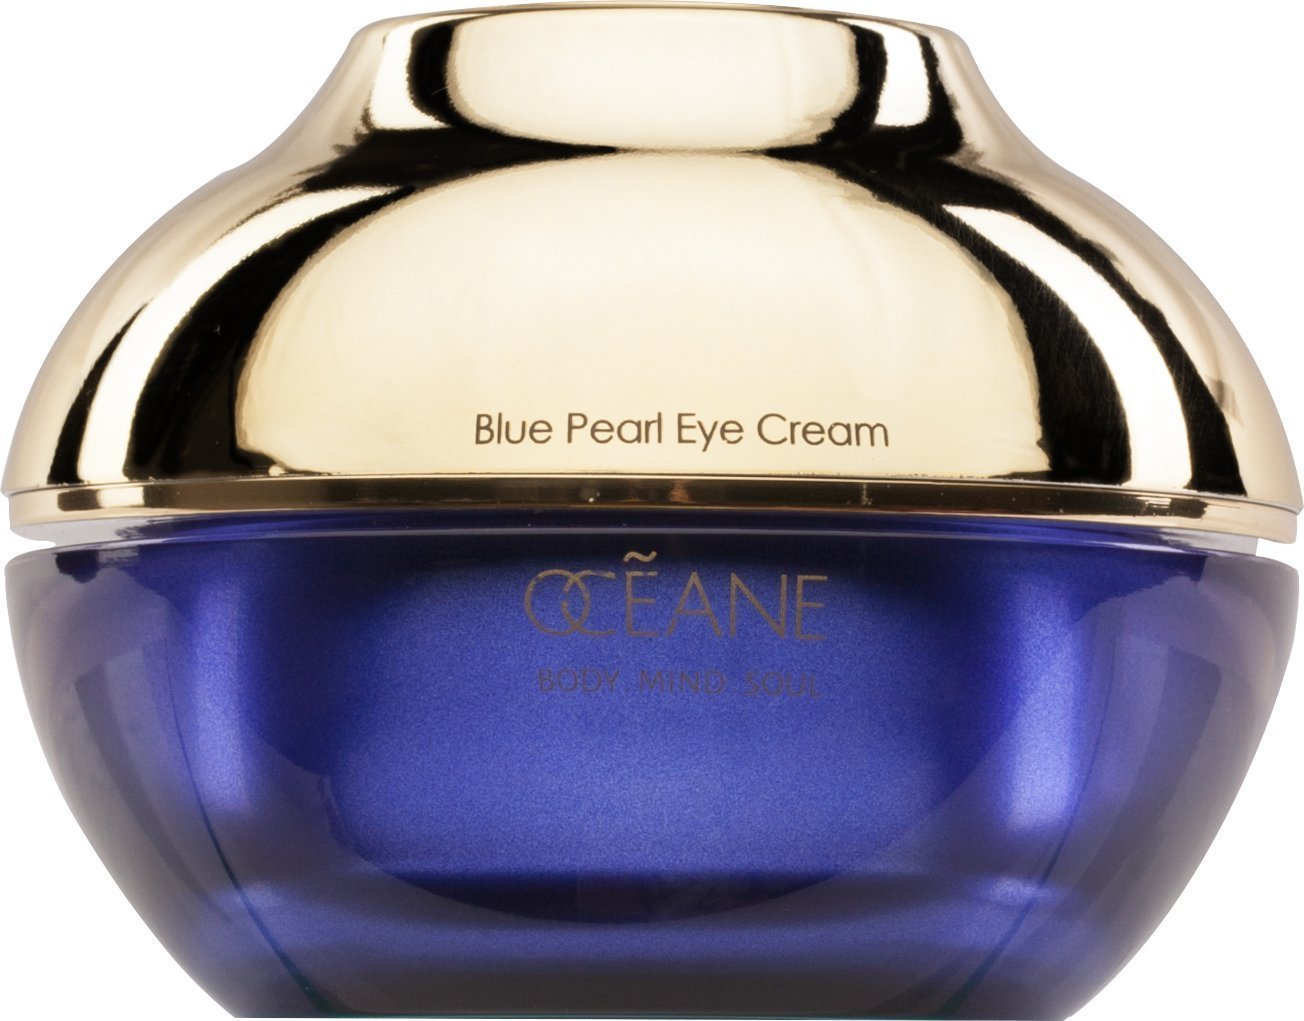 OCEANE Beauty Blue Pearl Infused Eye Cream w/ 100% Mother of Pearl and Marine Stem Cells Forever Flawless